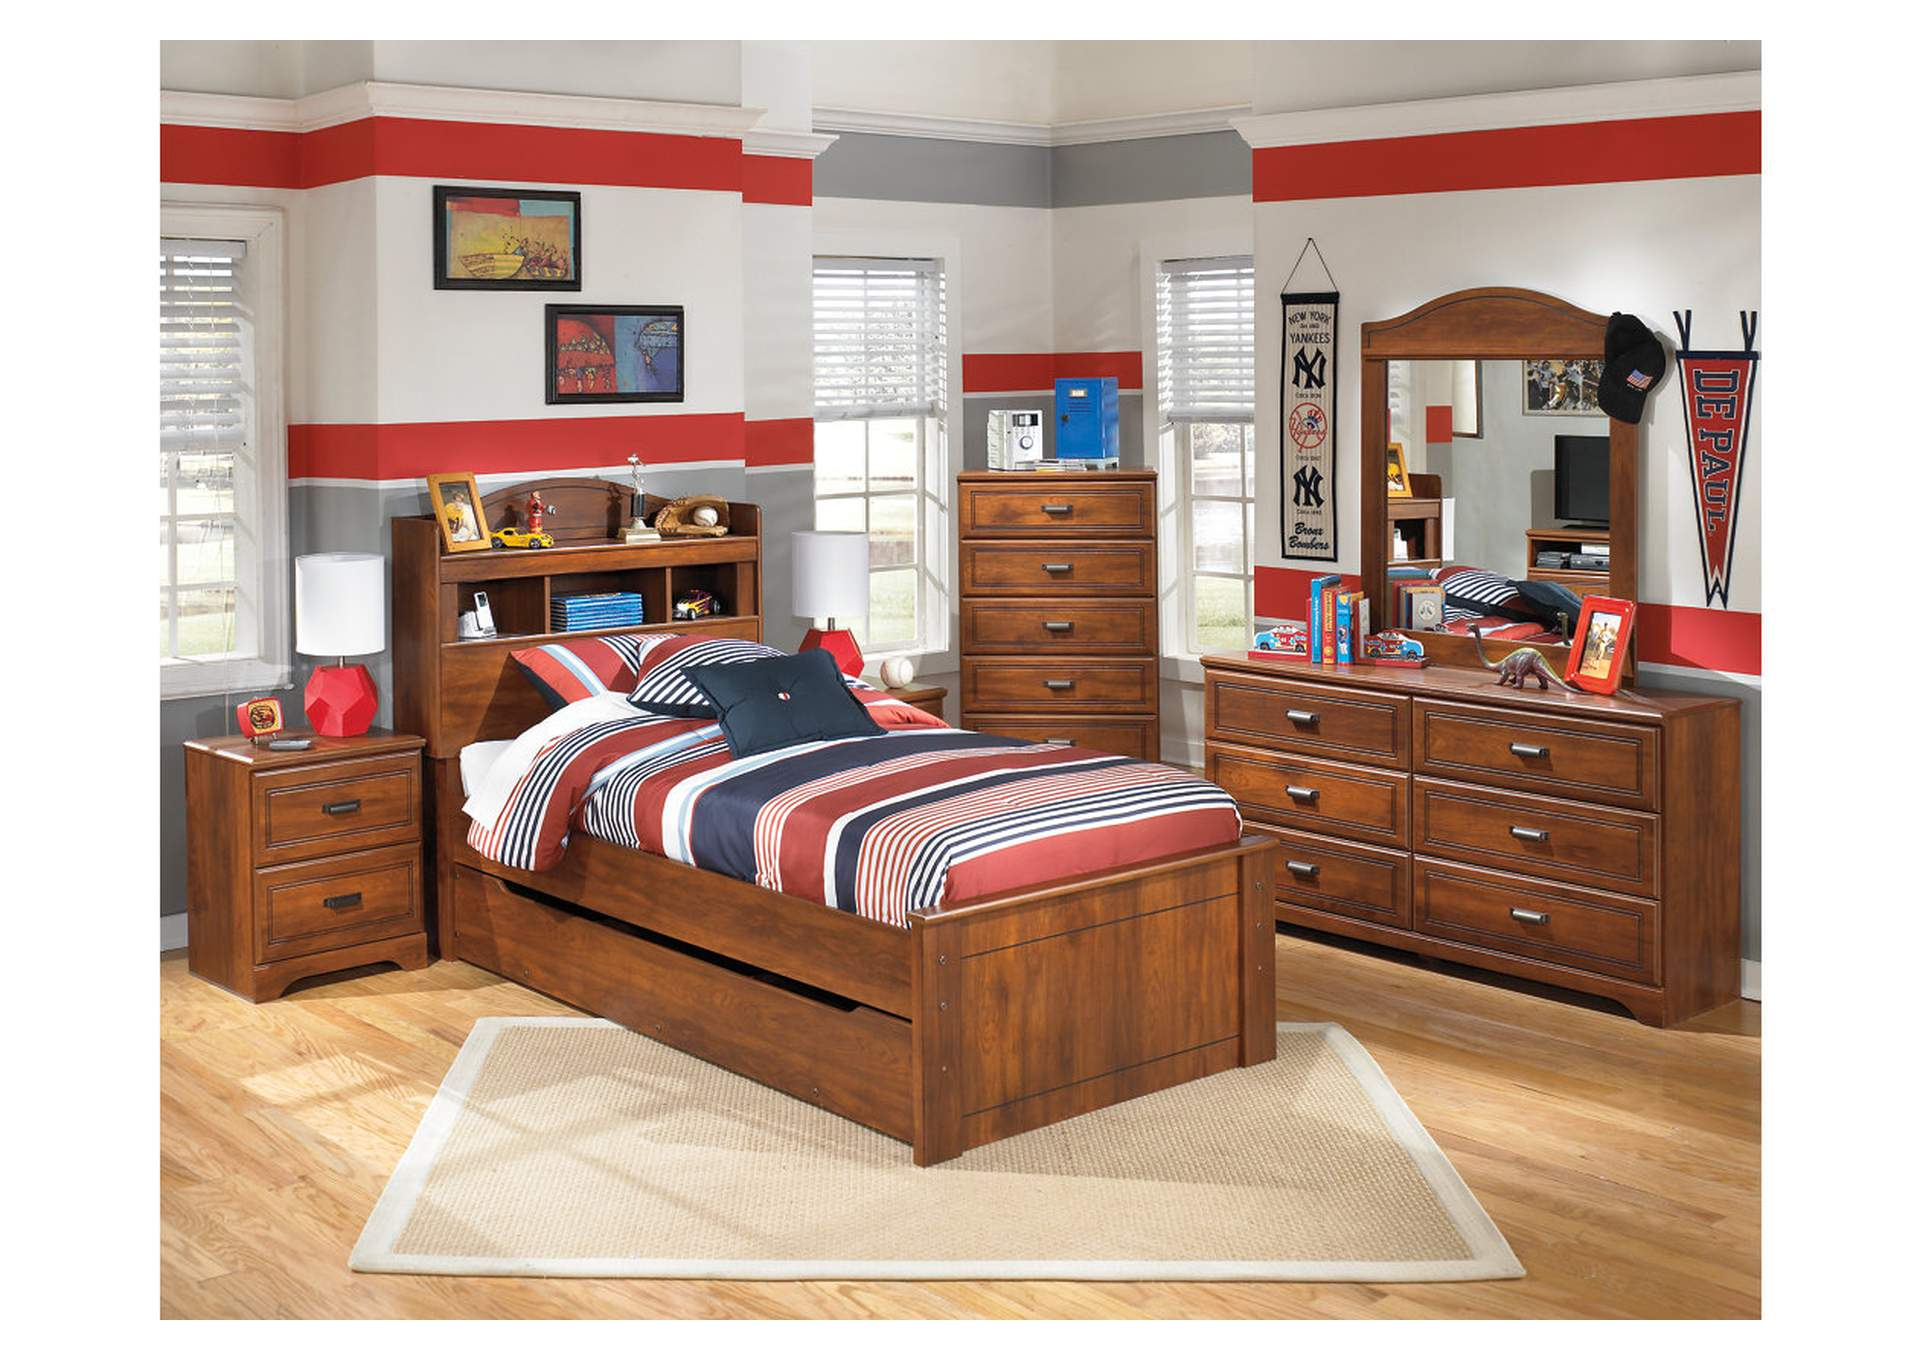 Barchan Twin Bookcase Bed w/Trundle, Dresser, Mirror & Drawer Chest,Signature Design By Ashley